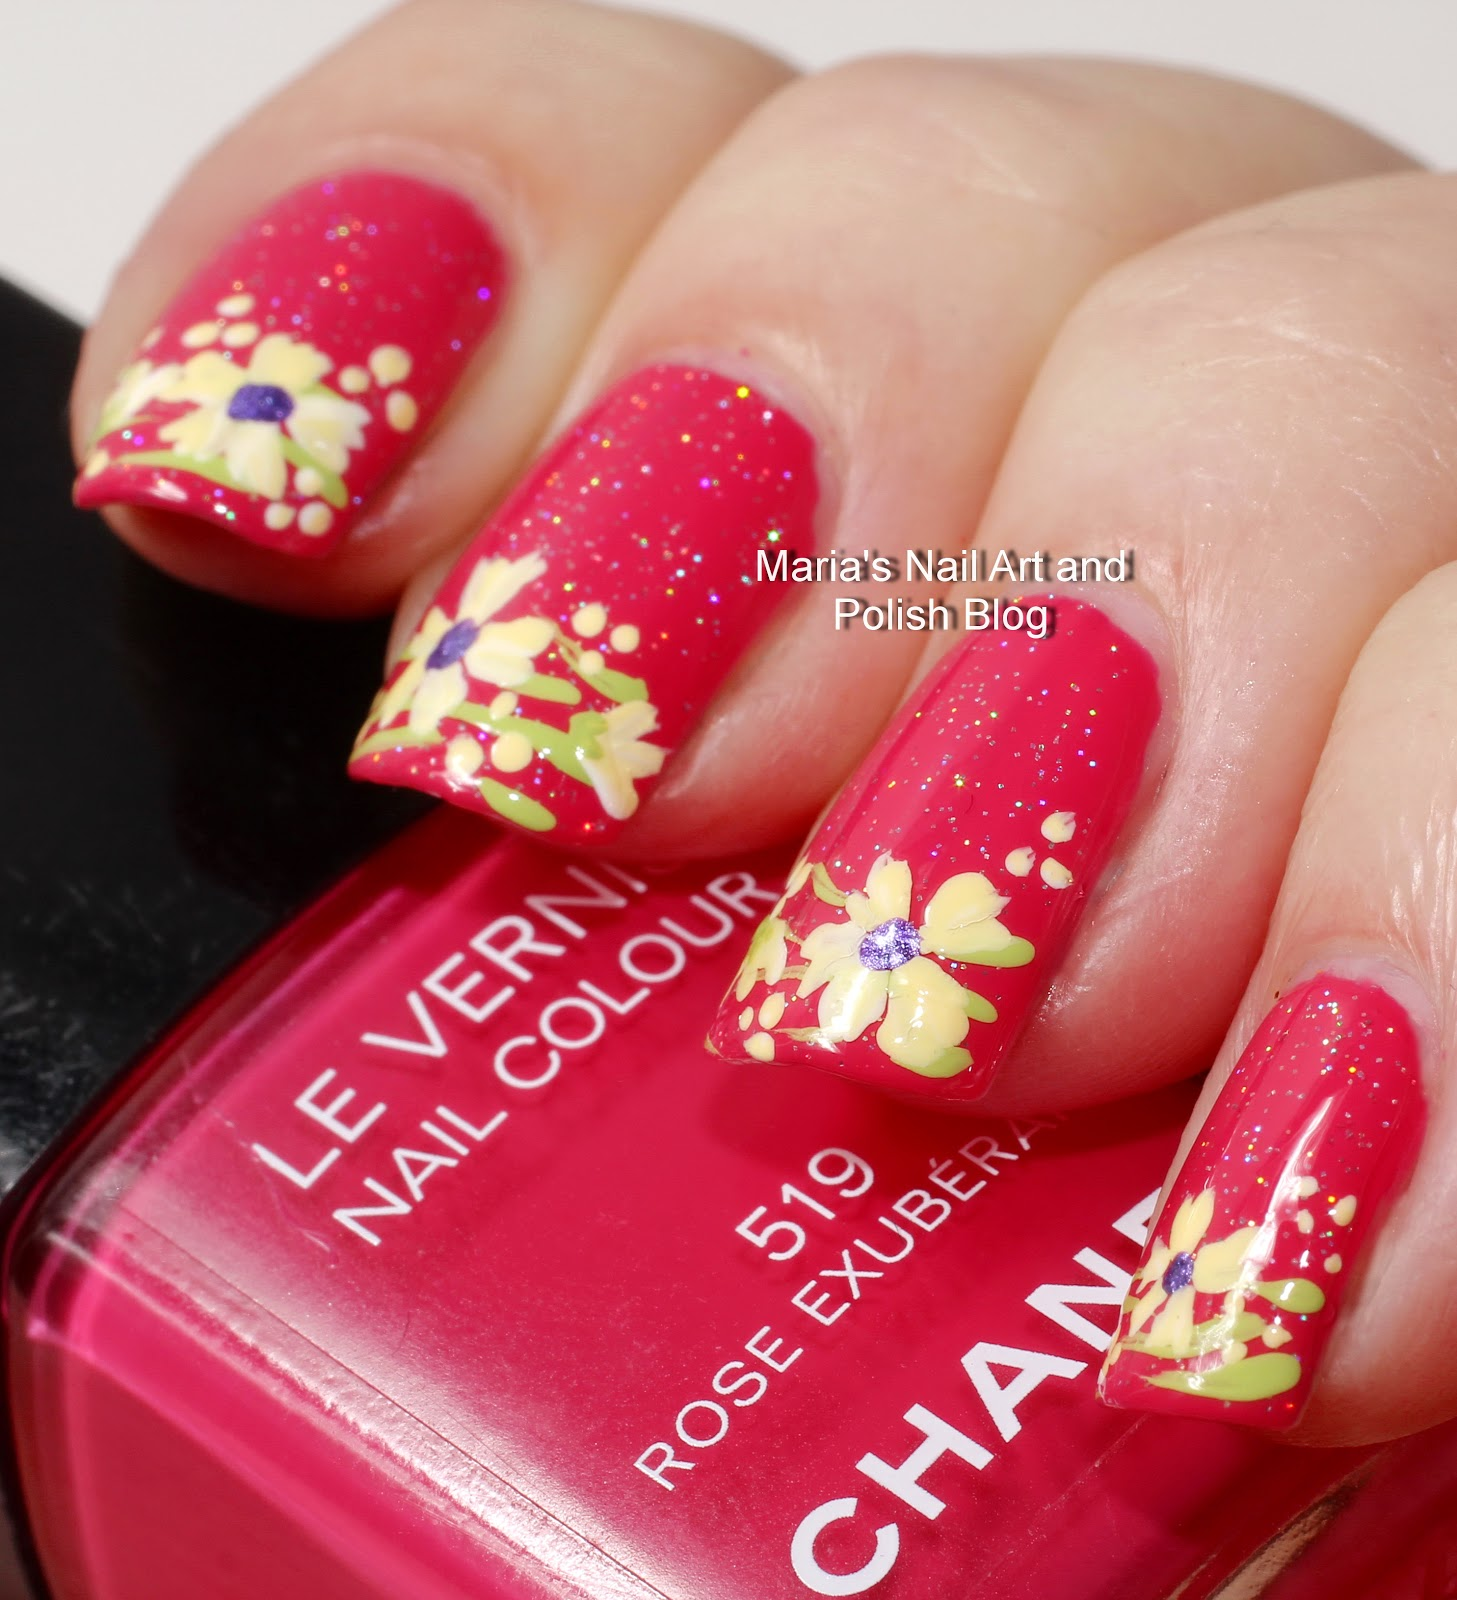 Marias Nail Art And Polish Blog Subtle Floral Nail Art On: Marias Nail Art And Polish Blog: Exuberant Floral French